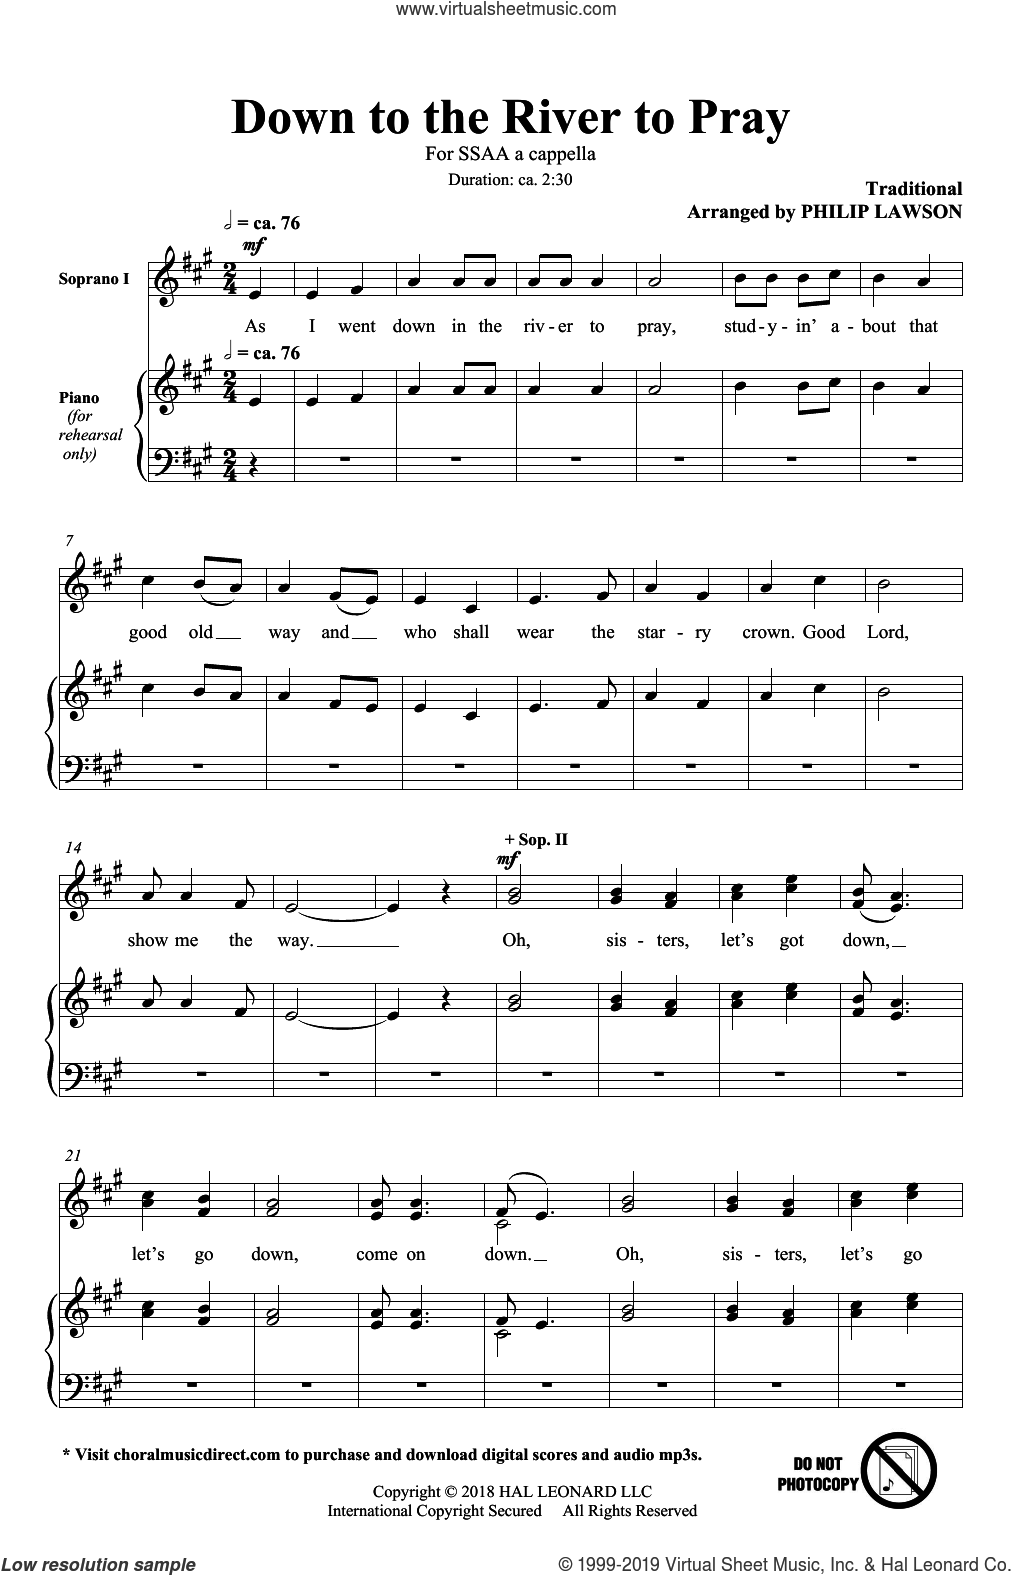 Down To The River To Pray sheet music for choir (SSAA: soprano, alto) by Philip Lawson and Miscellaneous, intermediate skill level